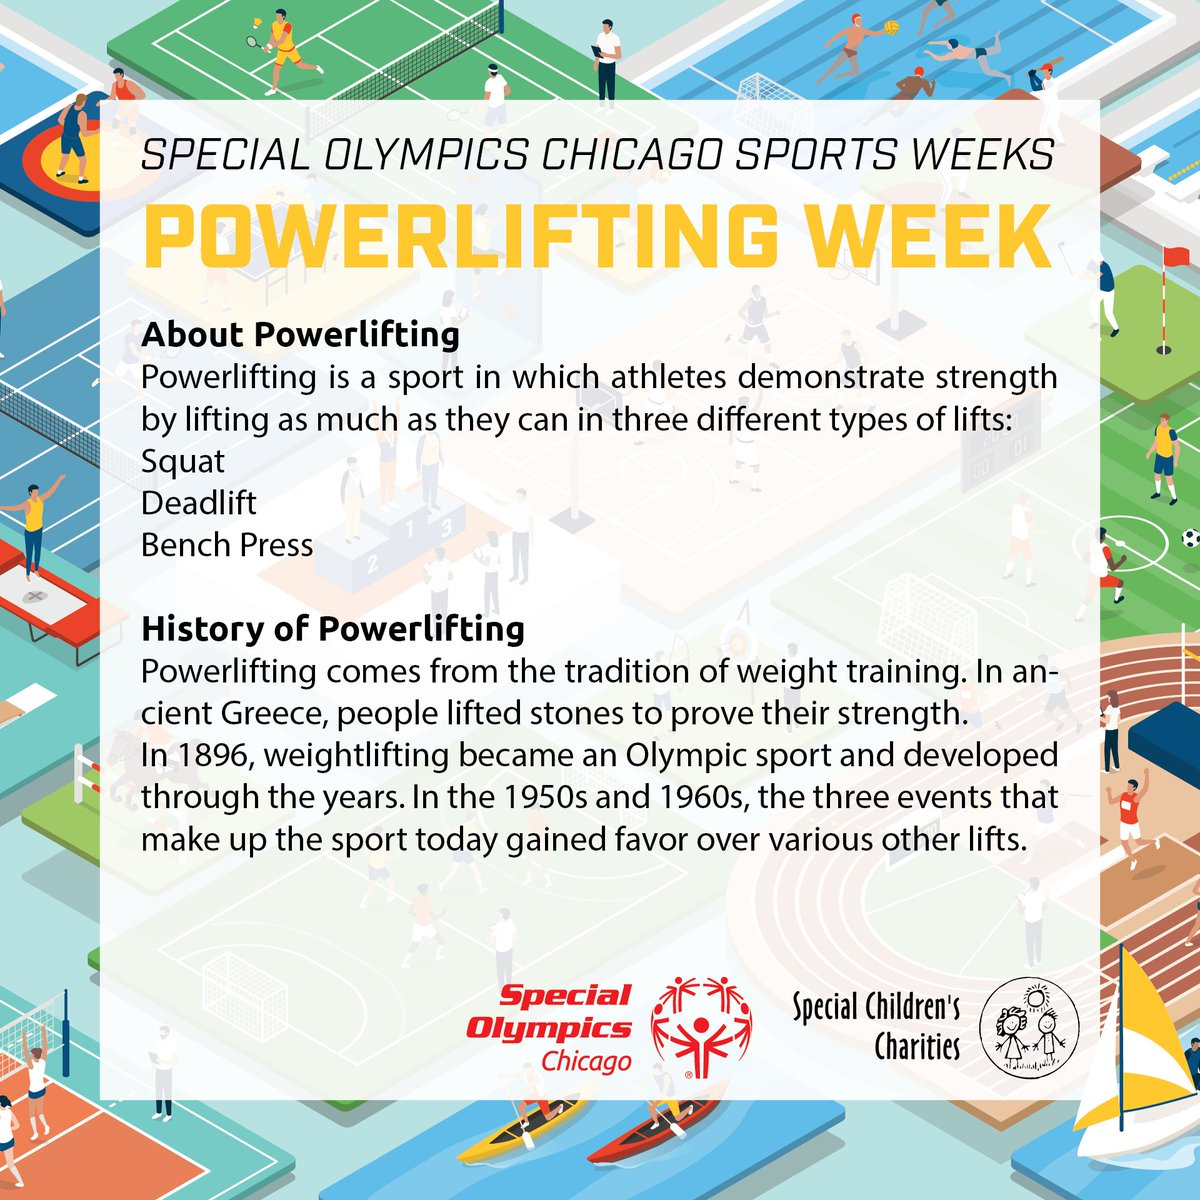 Powerlifting is a sport in which athletes demonstrate strength by lifting as much as they can in three different types of lifts: Squat, Deadlift, and Bench Press. Powerliftingis a very popular sport among SOC athletes,and all three events are included in our competitions. https://t.co/ljiqU5U0C4